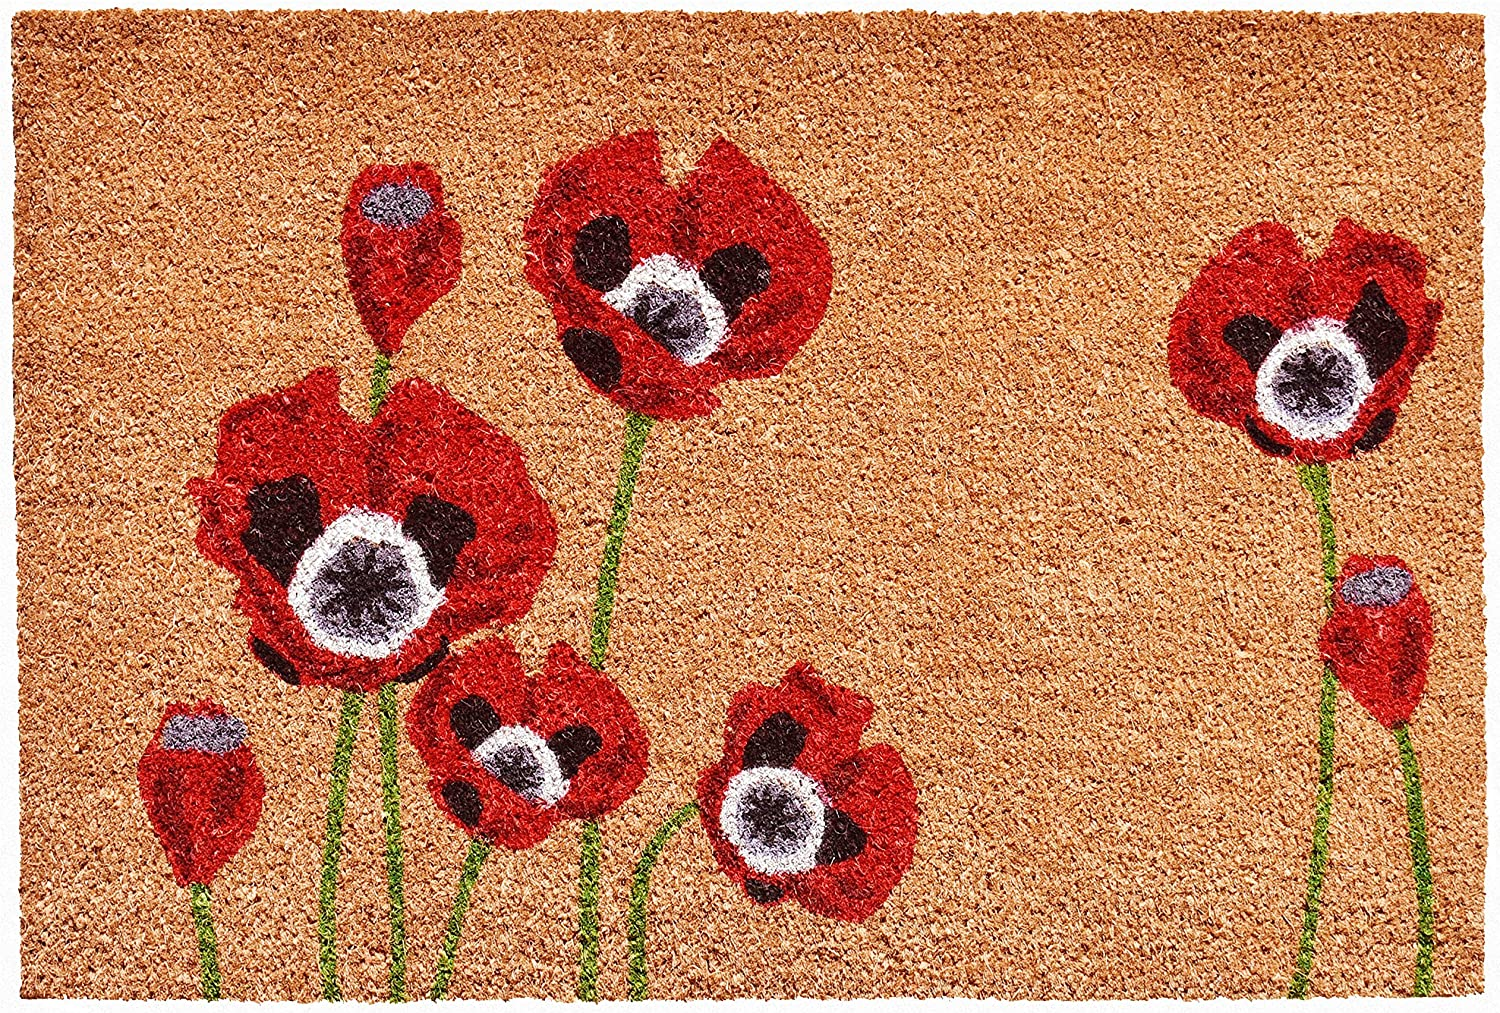 Home & More 104032436 Red Poppies Doormat, 24